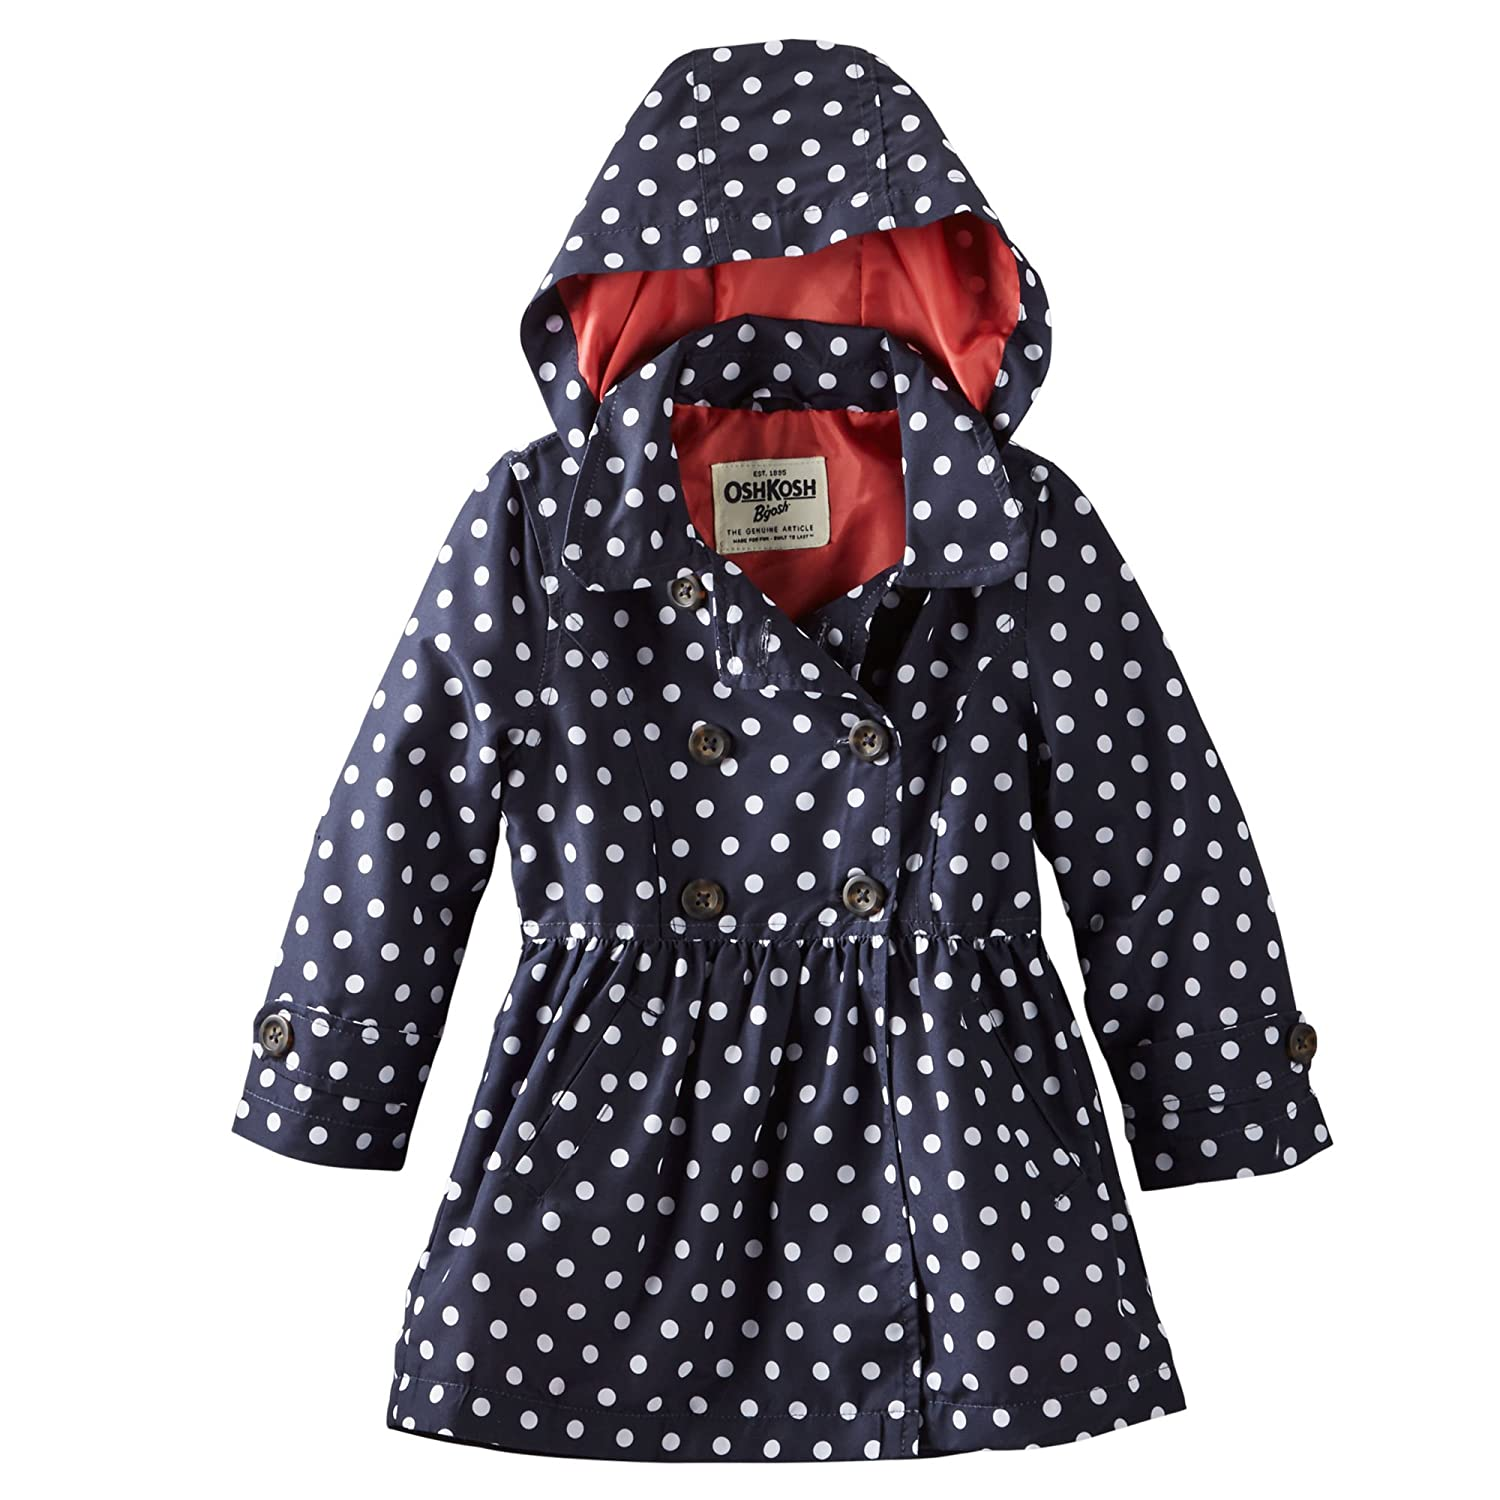 Amazon.com: Oshkosh B'gosh Button up Hooded Trench Coat (12 Months ...